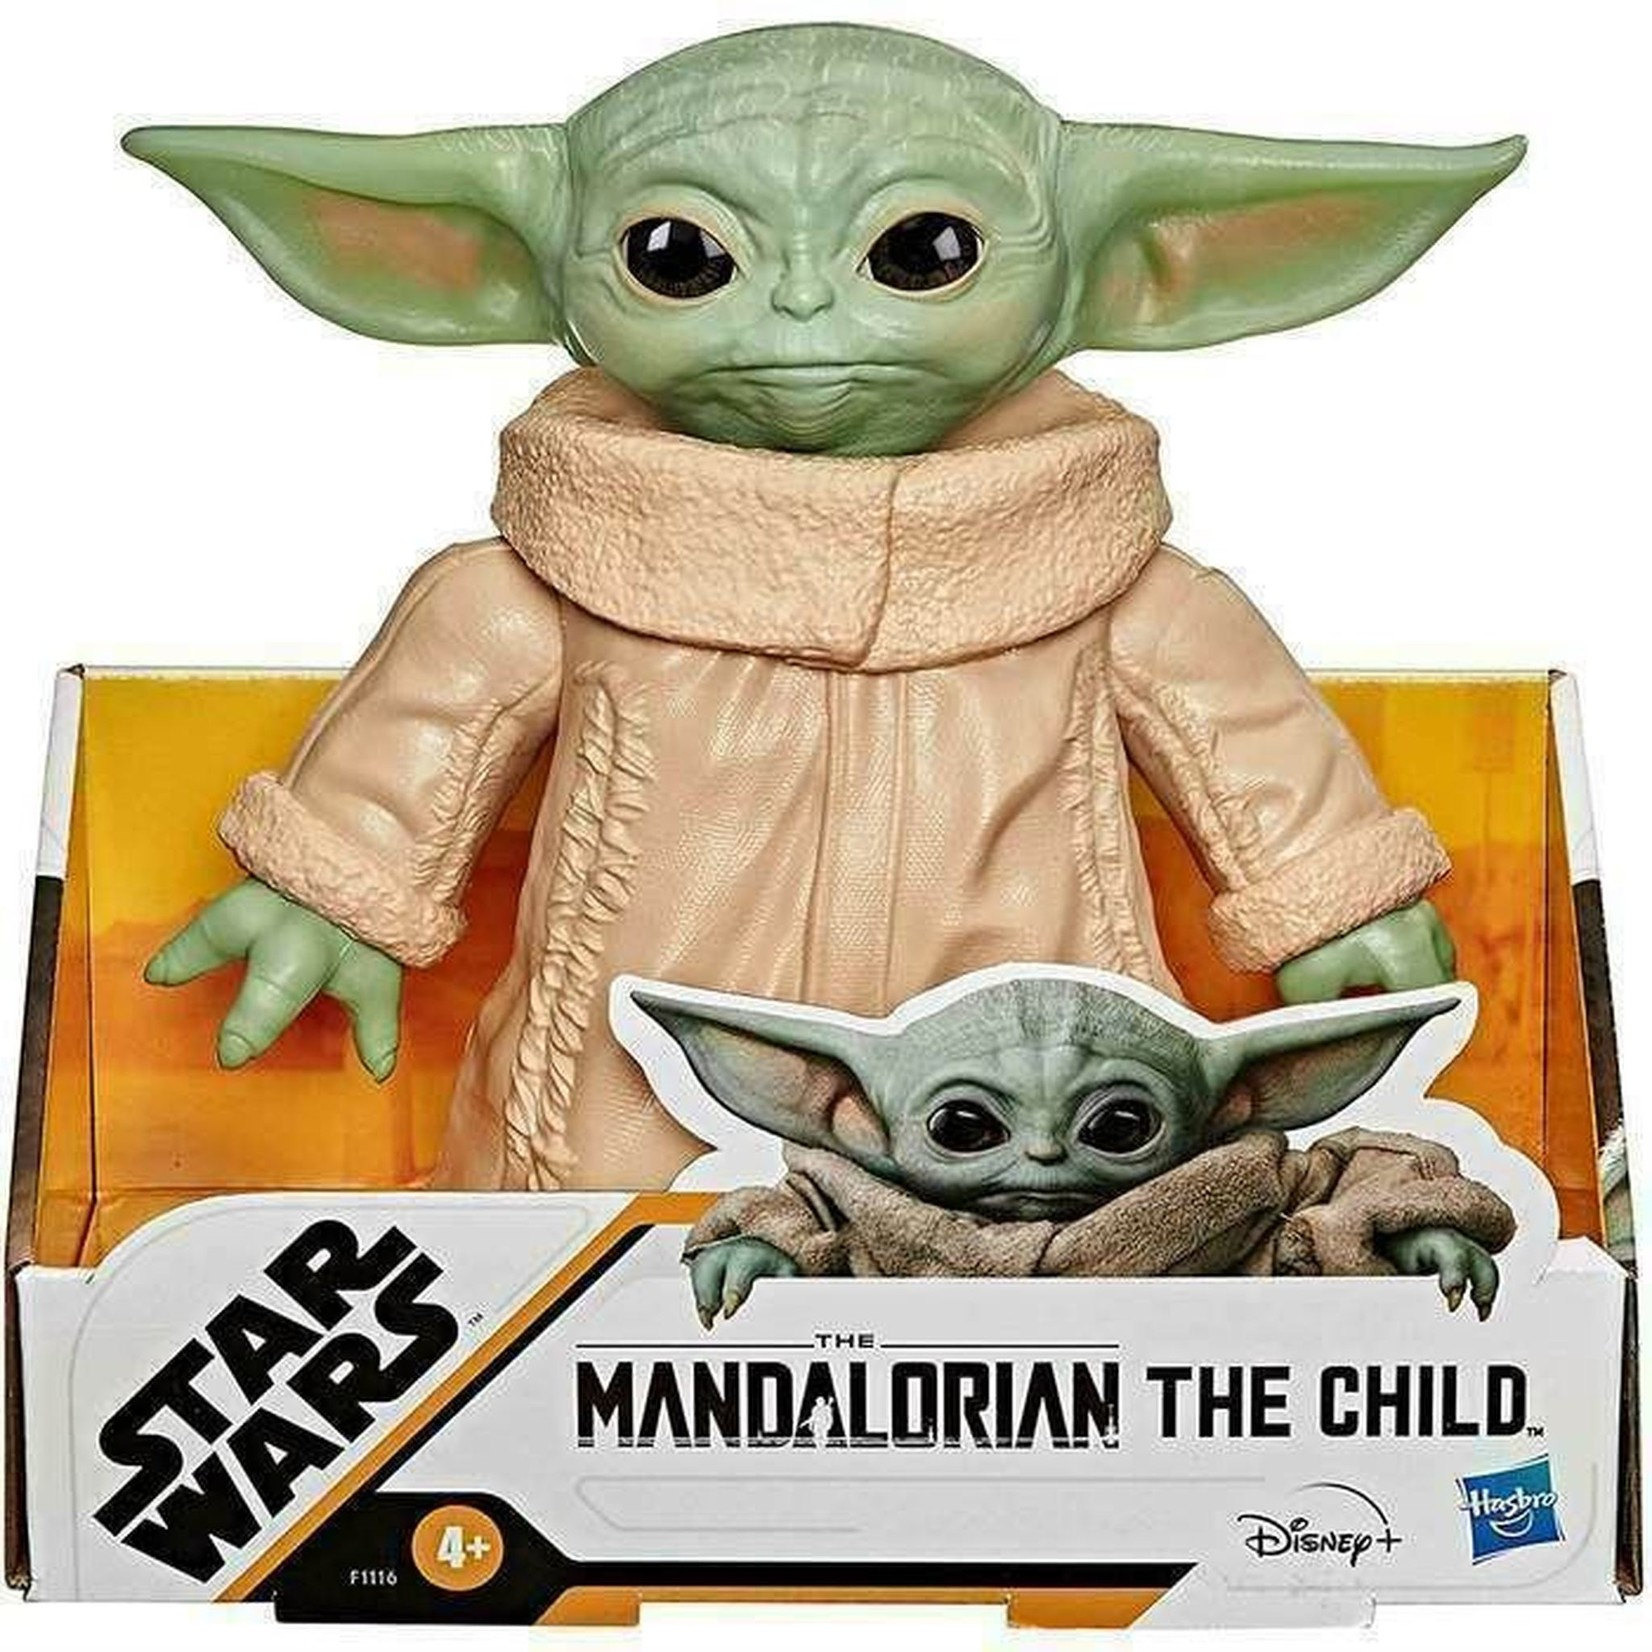 Star Wars Mandalorian The Child 6 1/2 Inch Action Figure